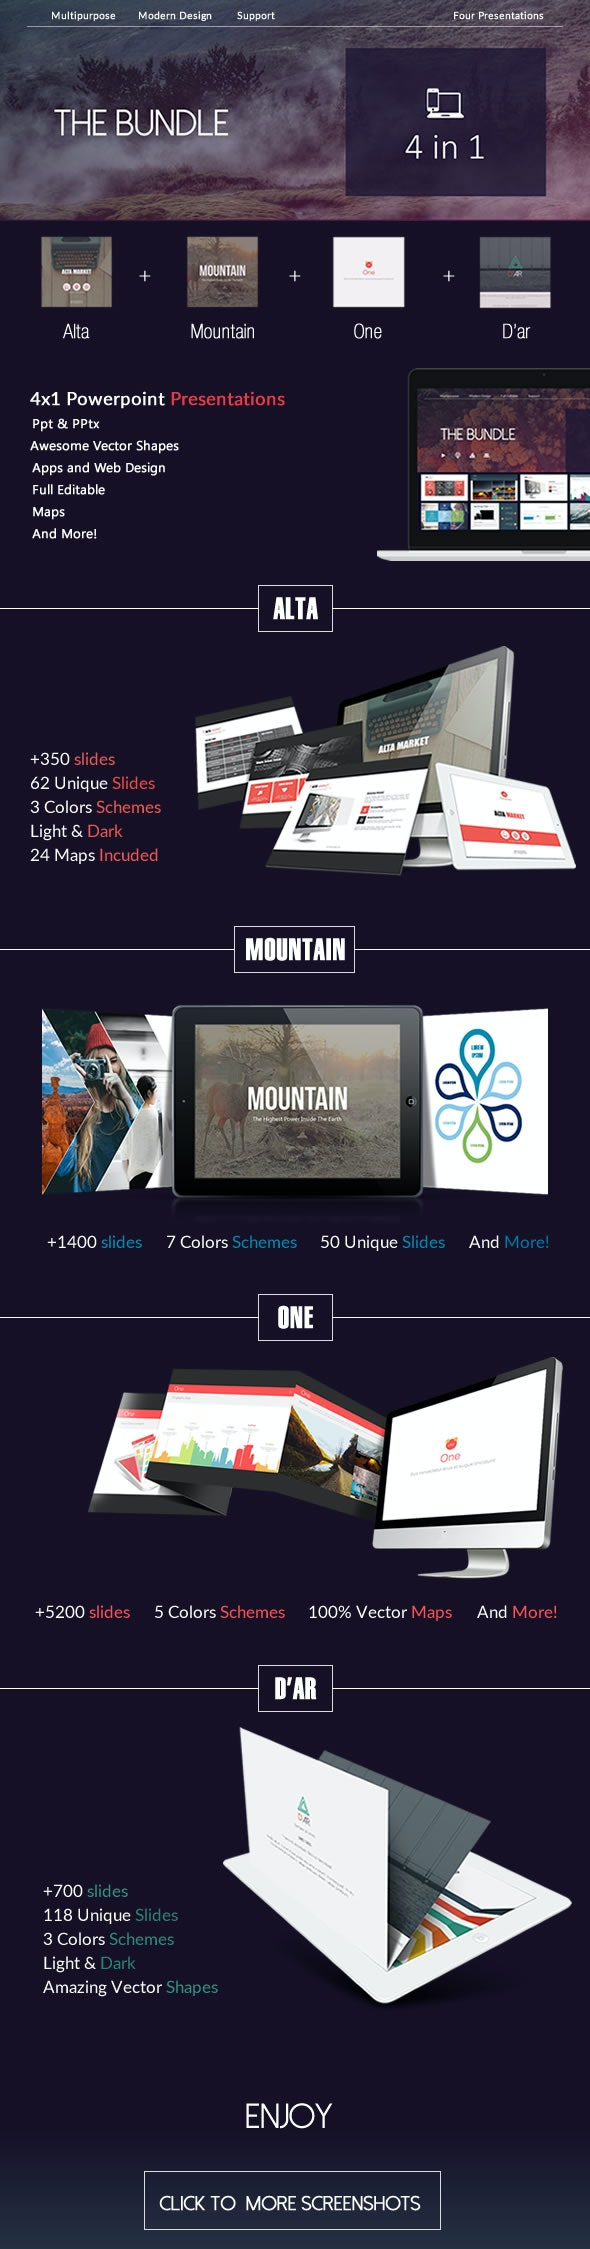 The Bundle - PowerPoint Templates Presentation Templates